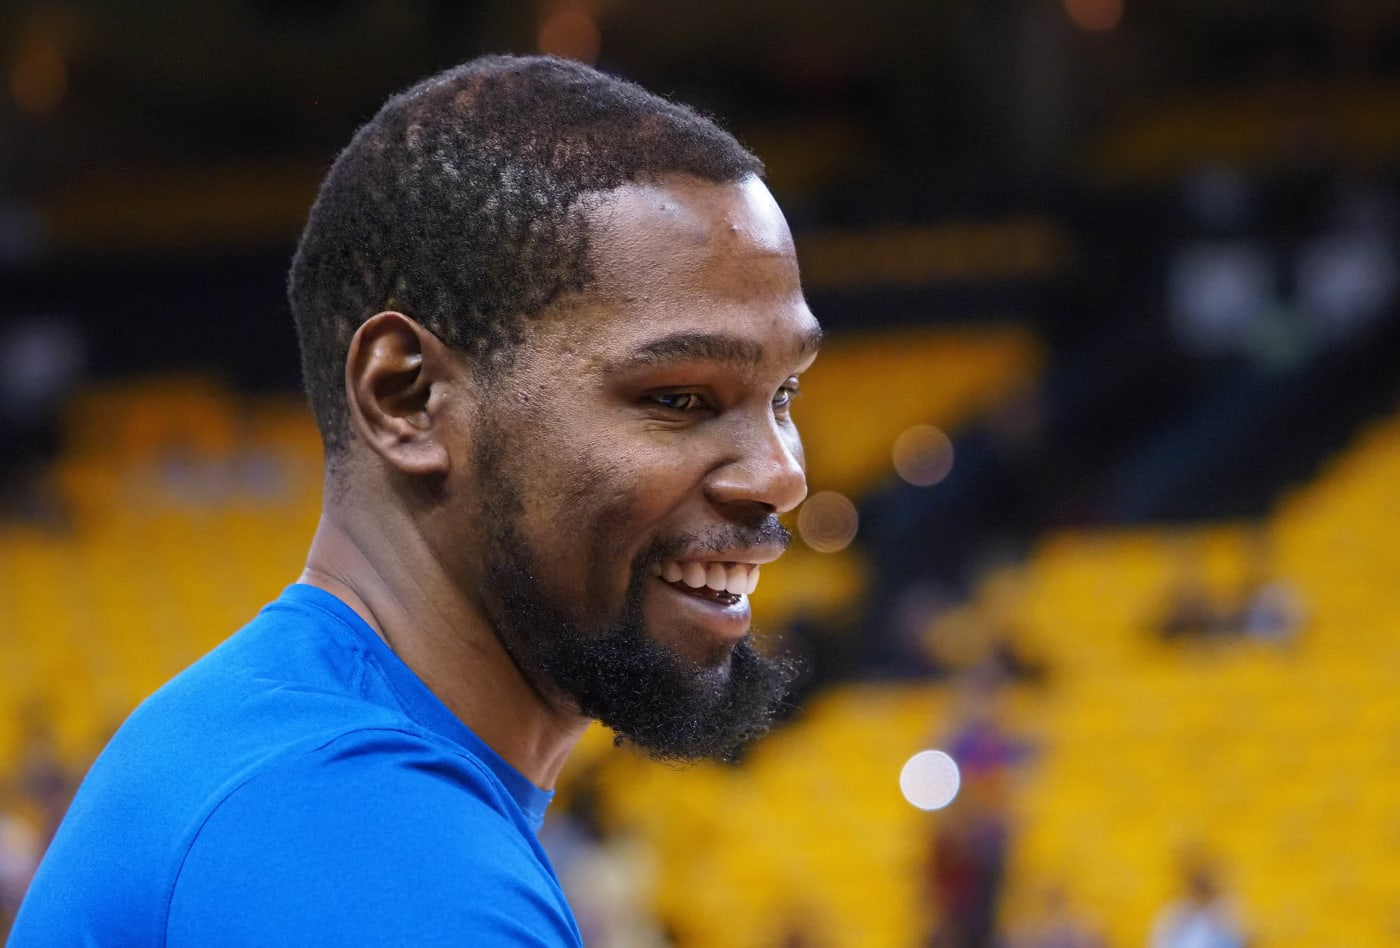 Kevin Durant Game 5 Clippers Warriors 2019 NBA Playoffs